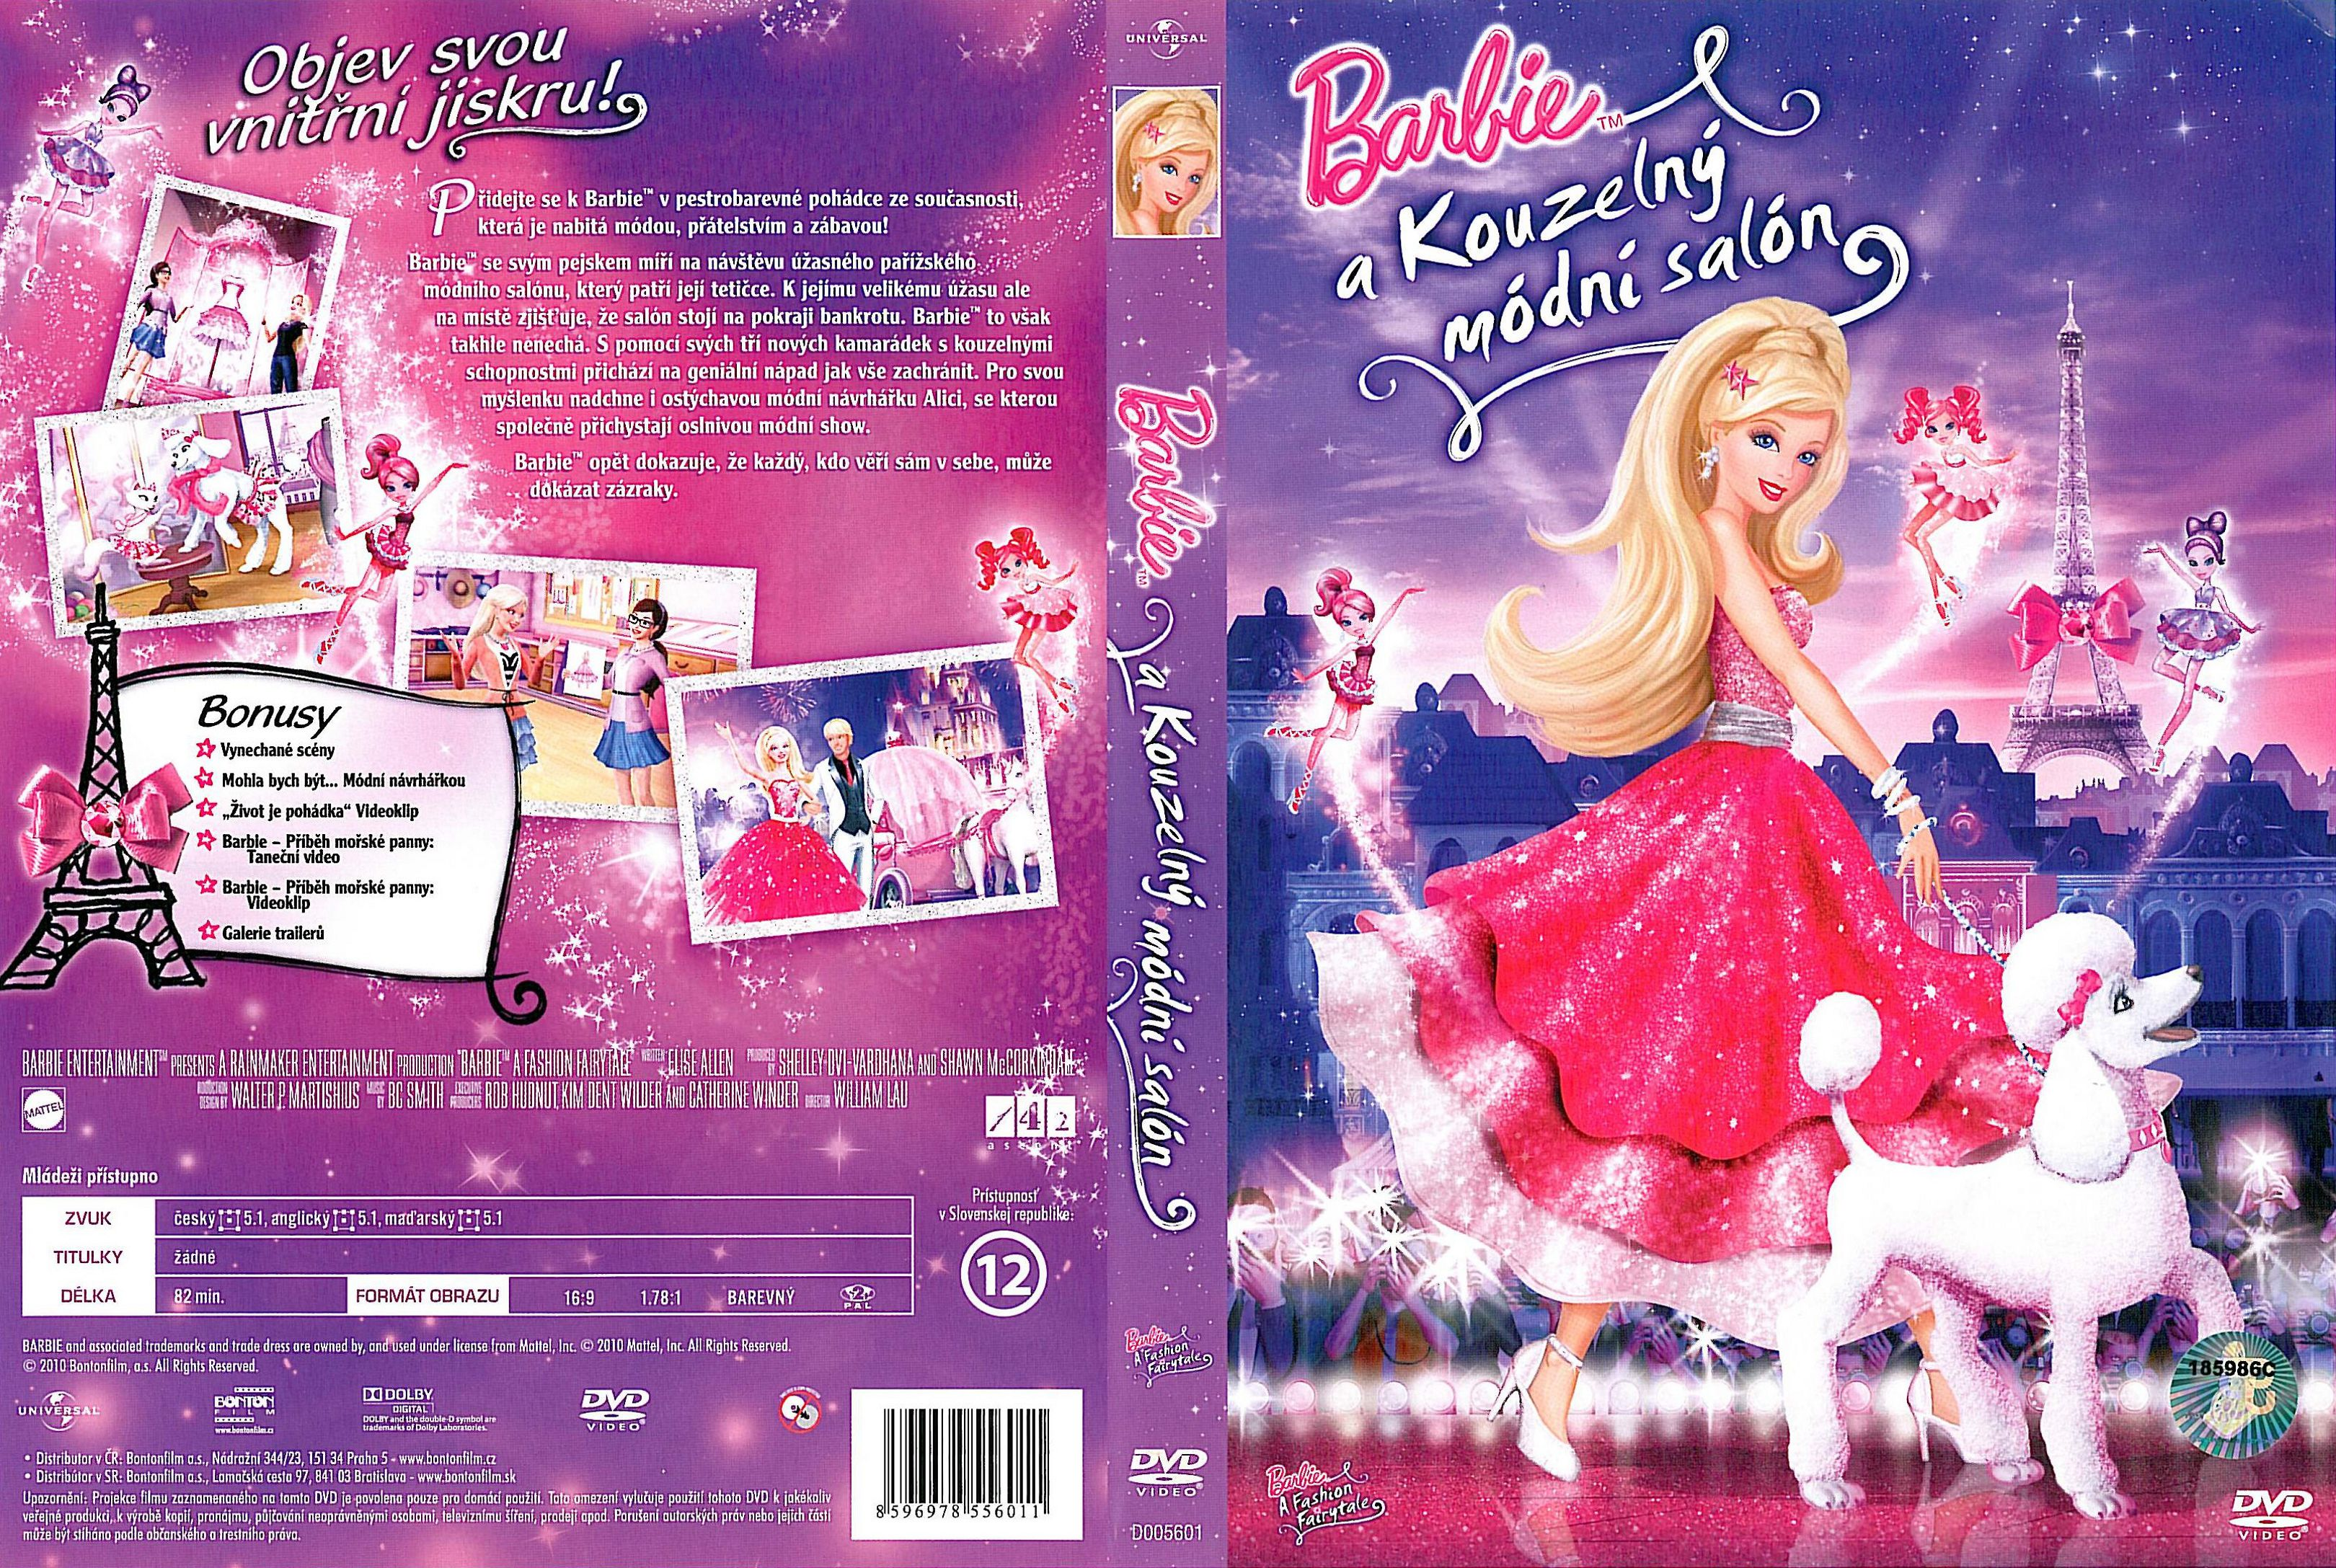 Barbie fairy fashion tale full movie 5